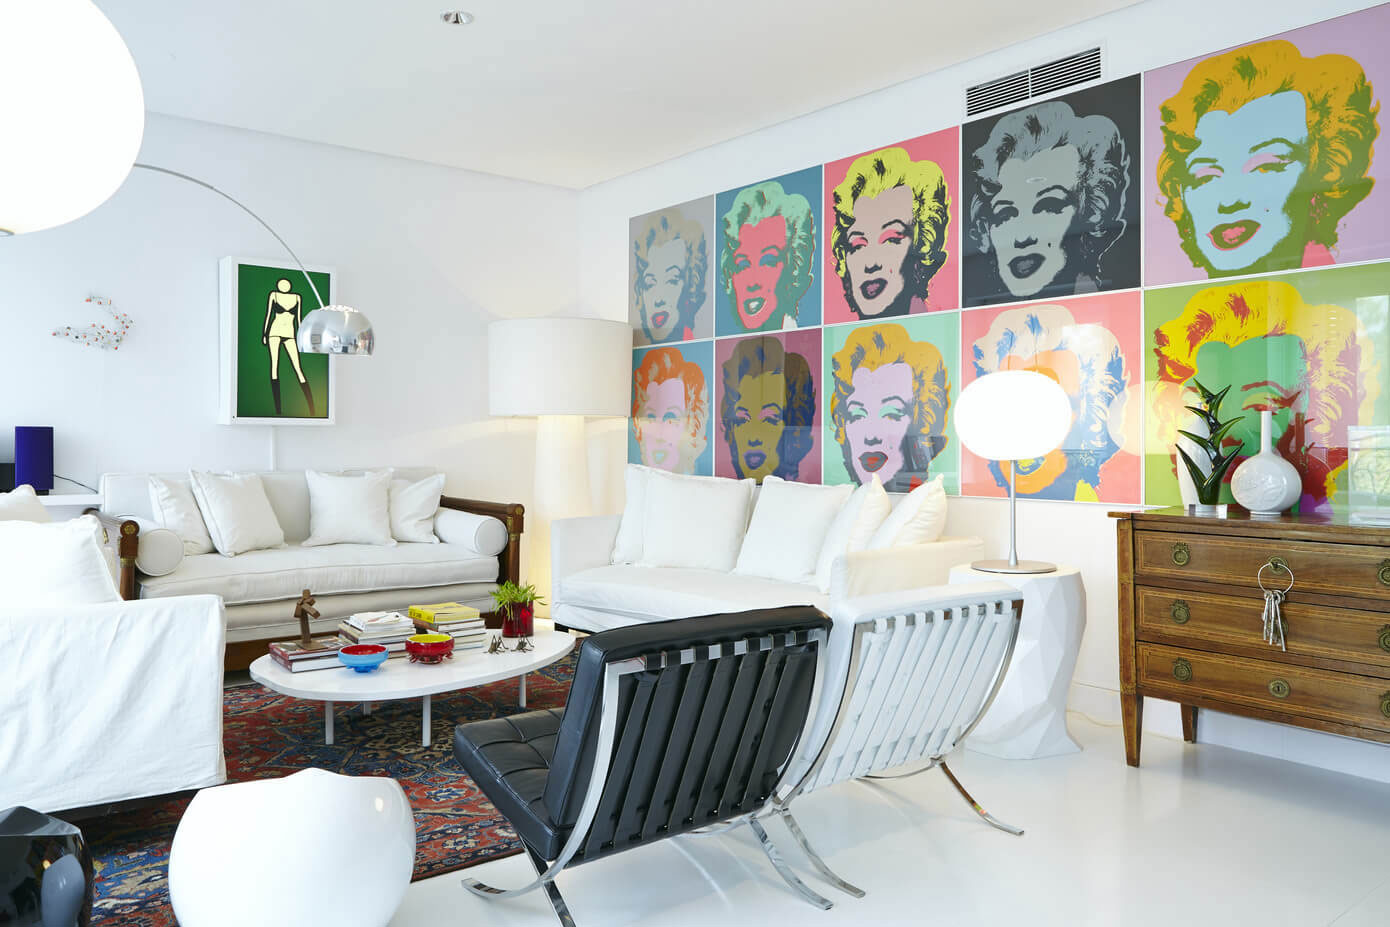 Home in madrid by teresa sapey